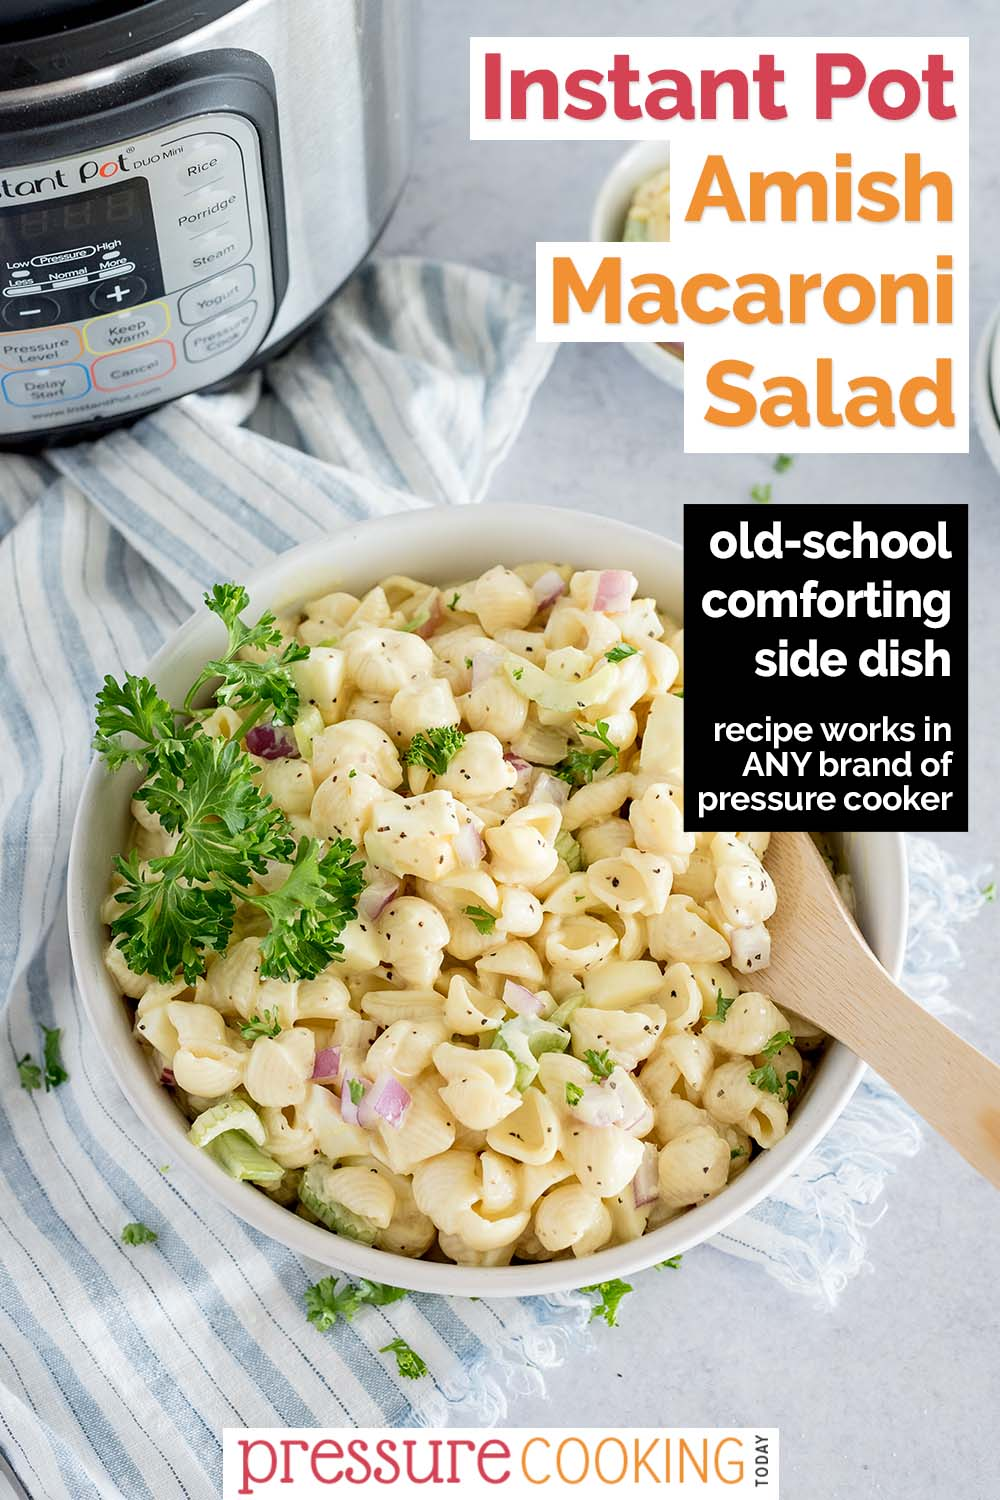 This EASY Instant Pot Amish Macaroni Salad features a tangy-sweet dressing poured over onions, celery, and pasta for the perfect BBQ tailgating side dish. via @PressureCook2da